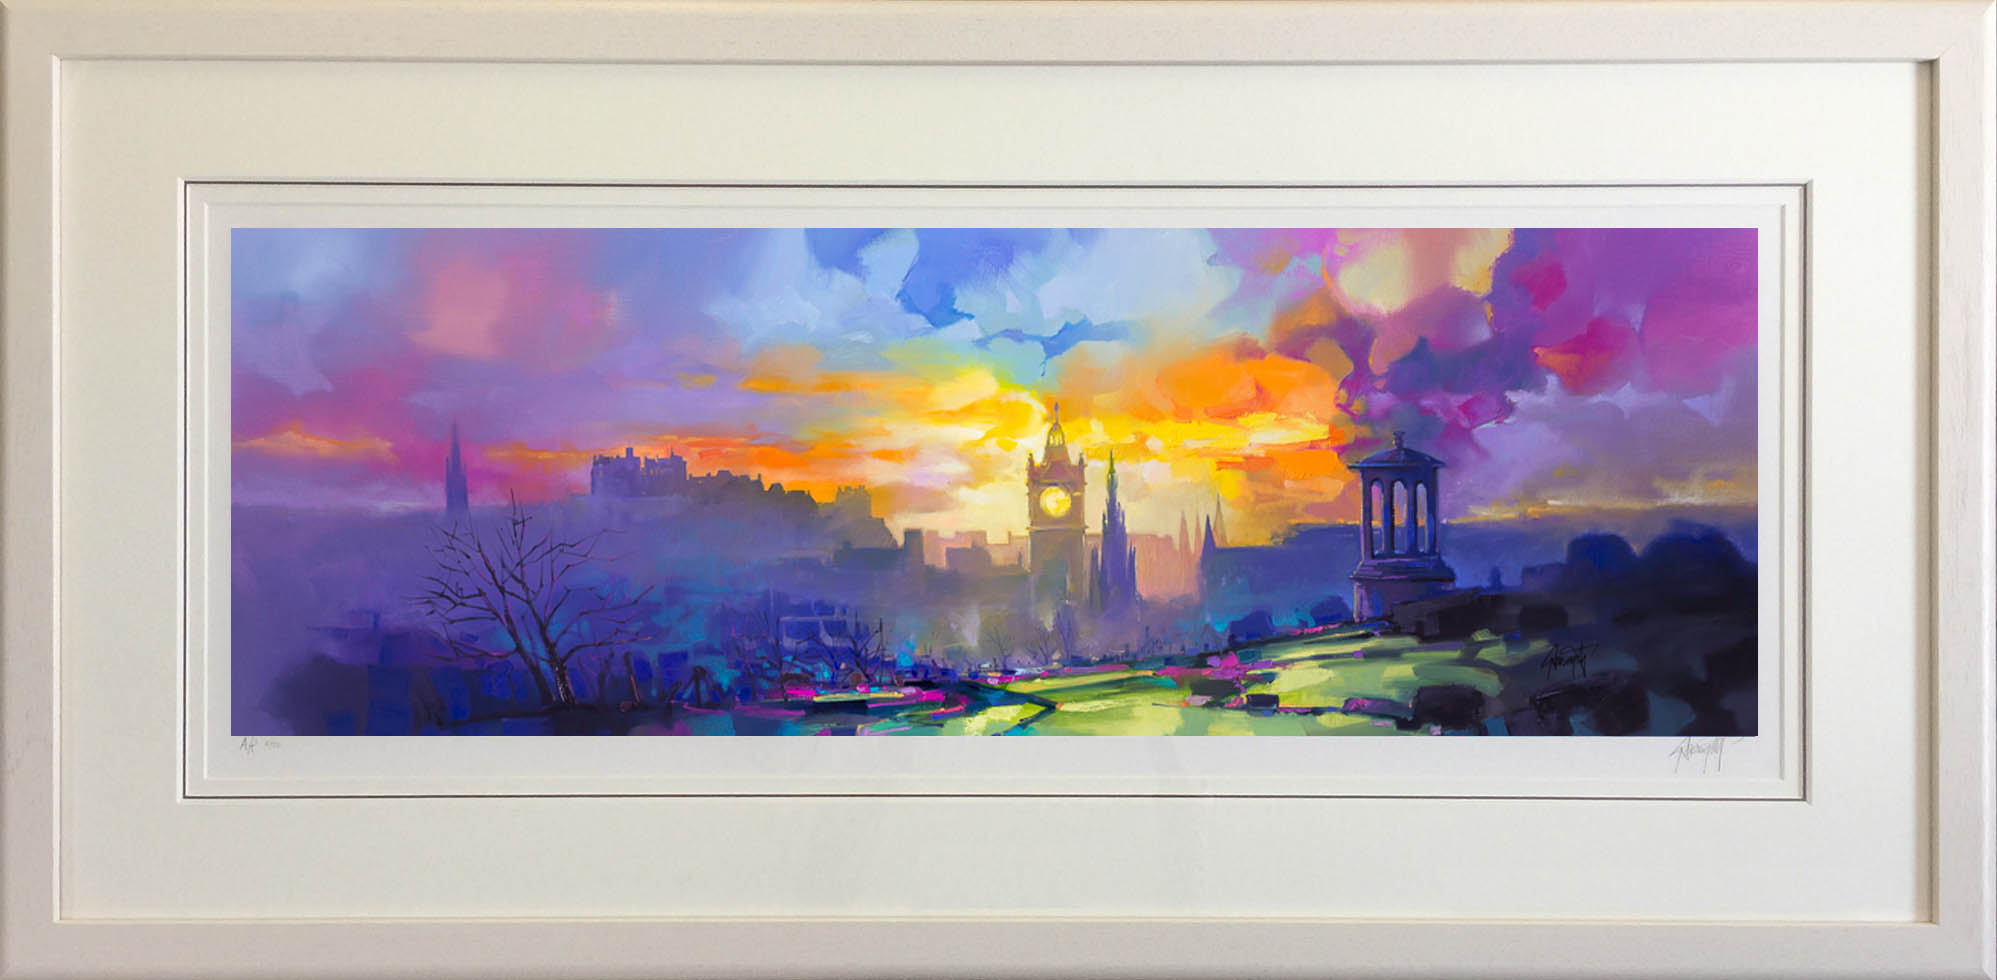 Calton Hill framed in white